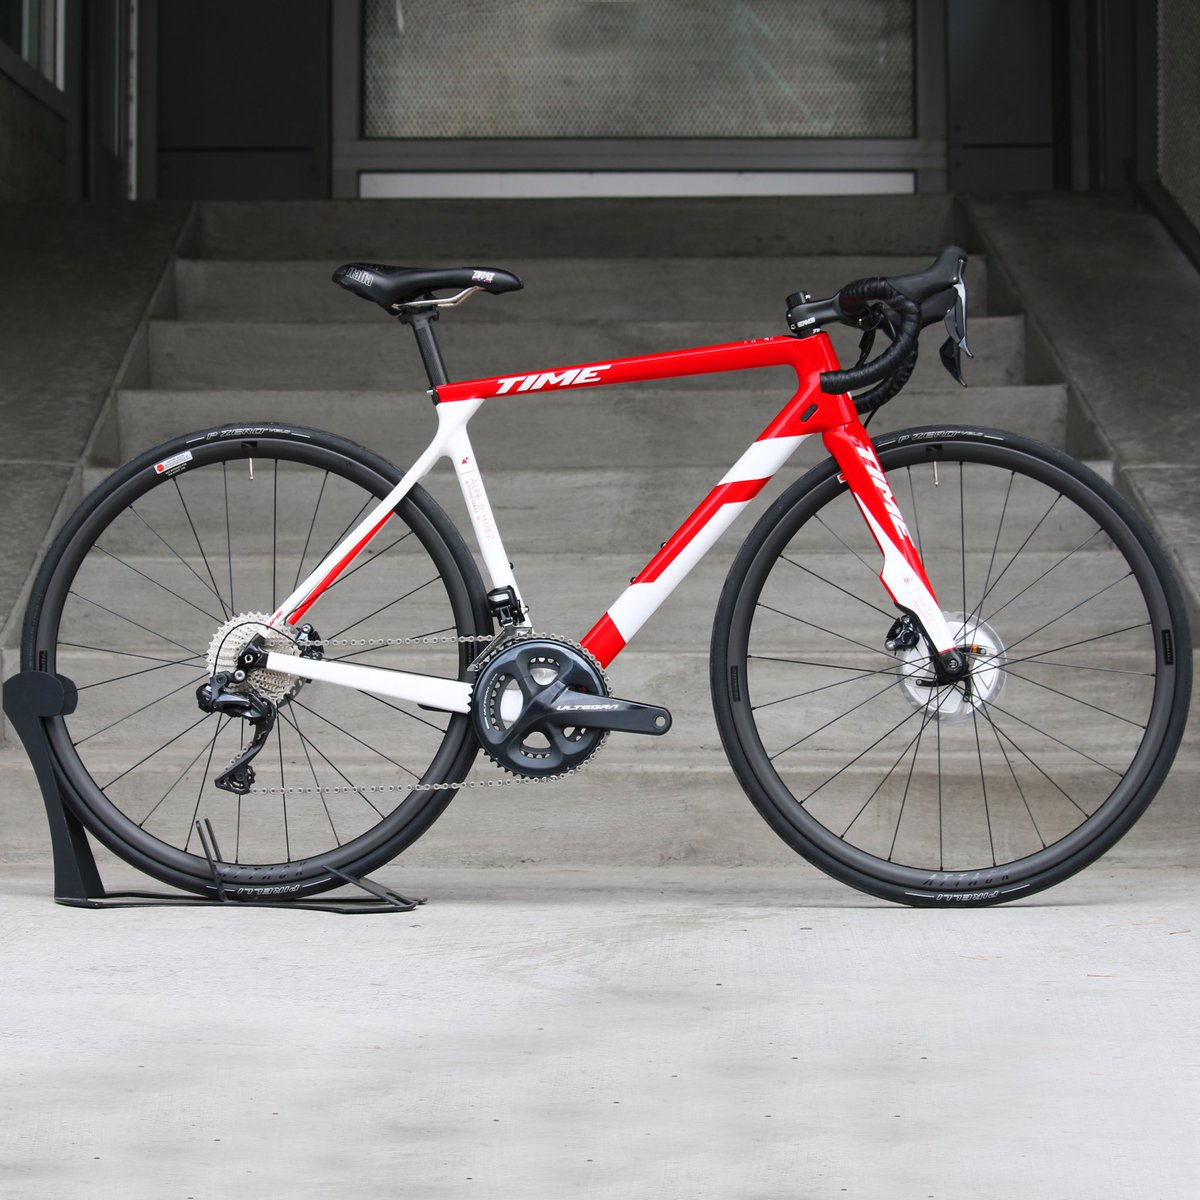 524072edaed Find even more savings on some of our suggested builds. https:// contenderbicycles.com/time-frameset-sale/ …pic.twitter.com/1z6zuwXzZv